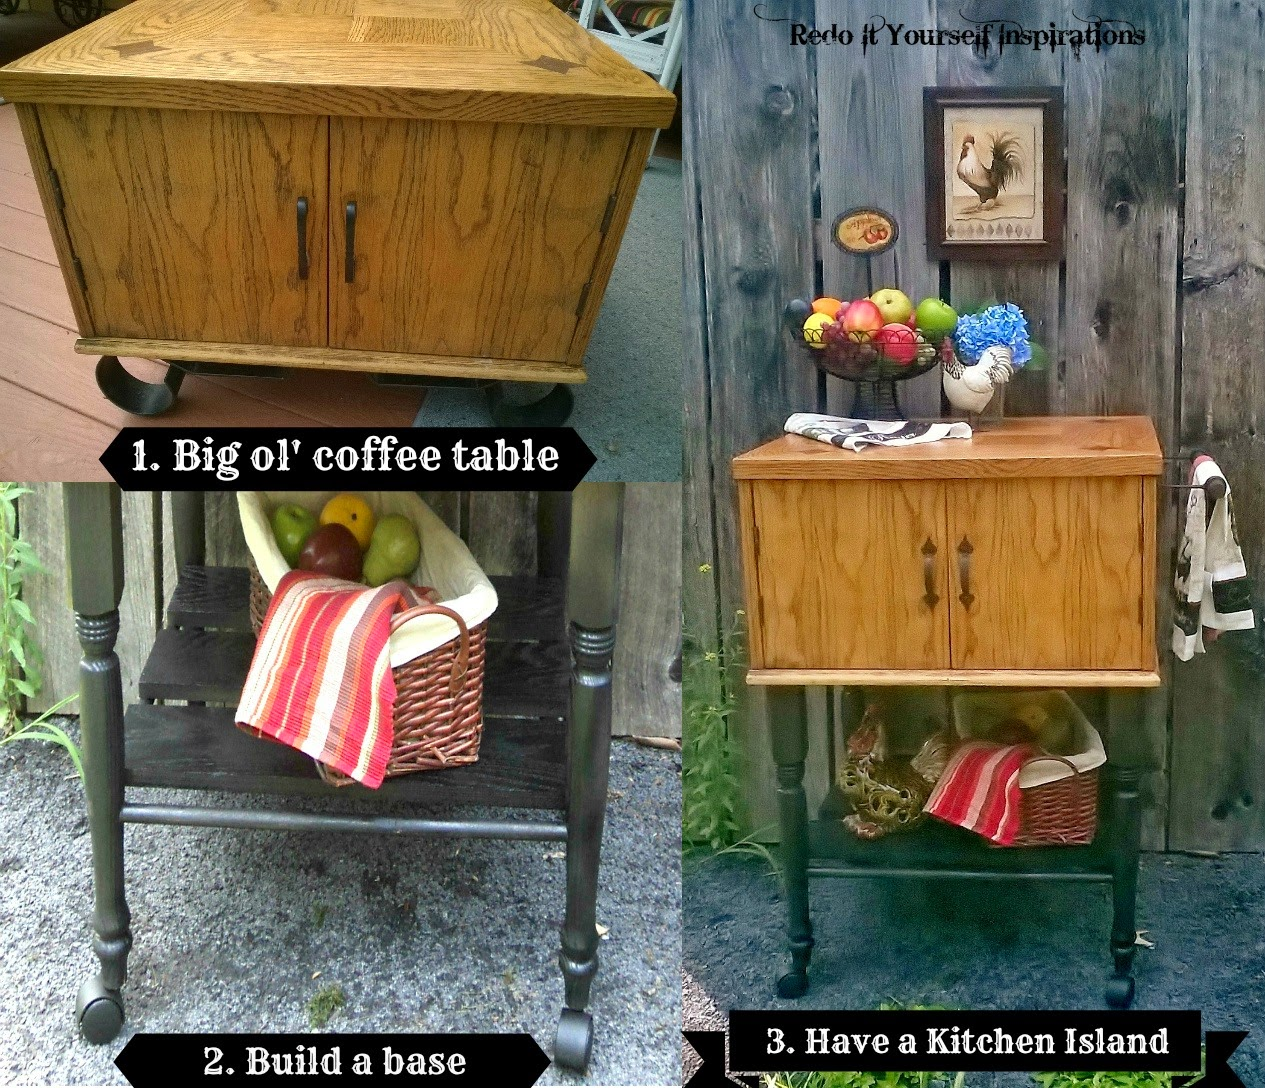 Build A Kitchen Table: Redo It Yourself Inspirations